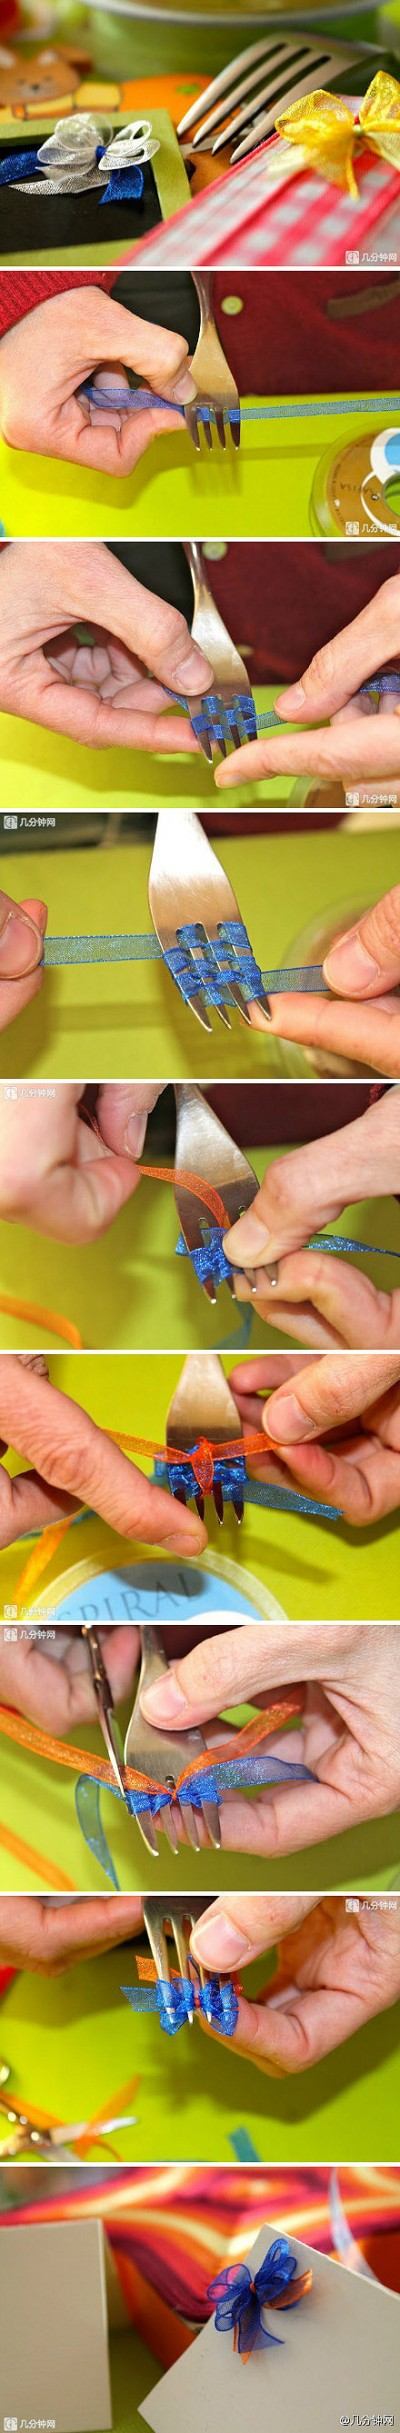 How to tie a beautiful knot using a fork step by step DIY tutorial instructions